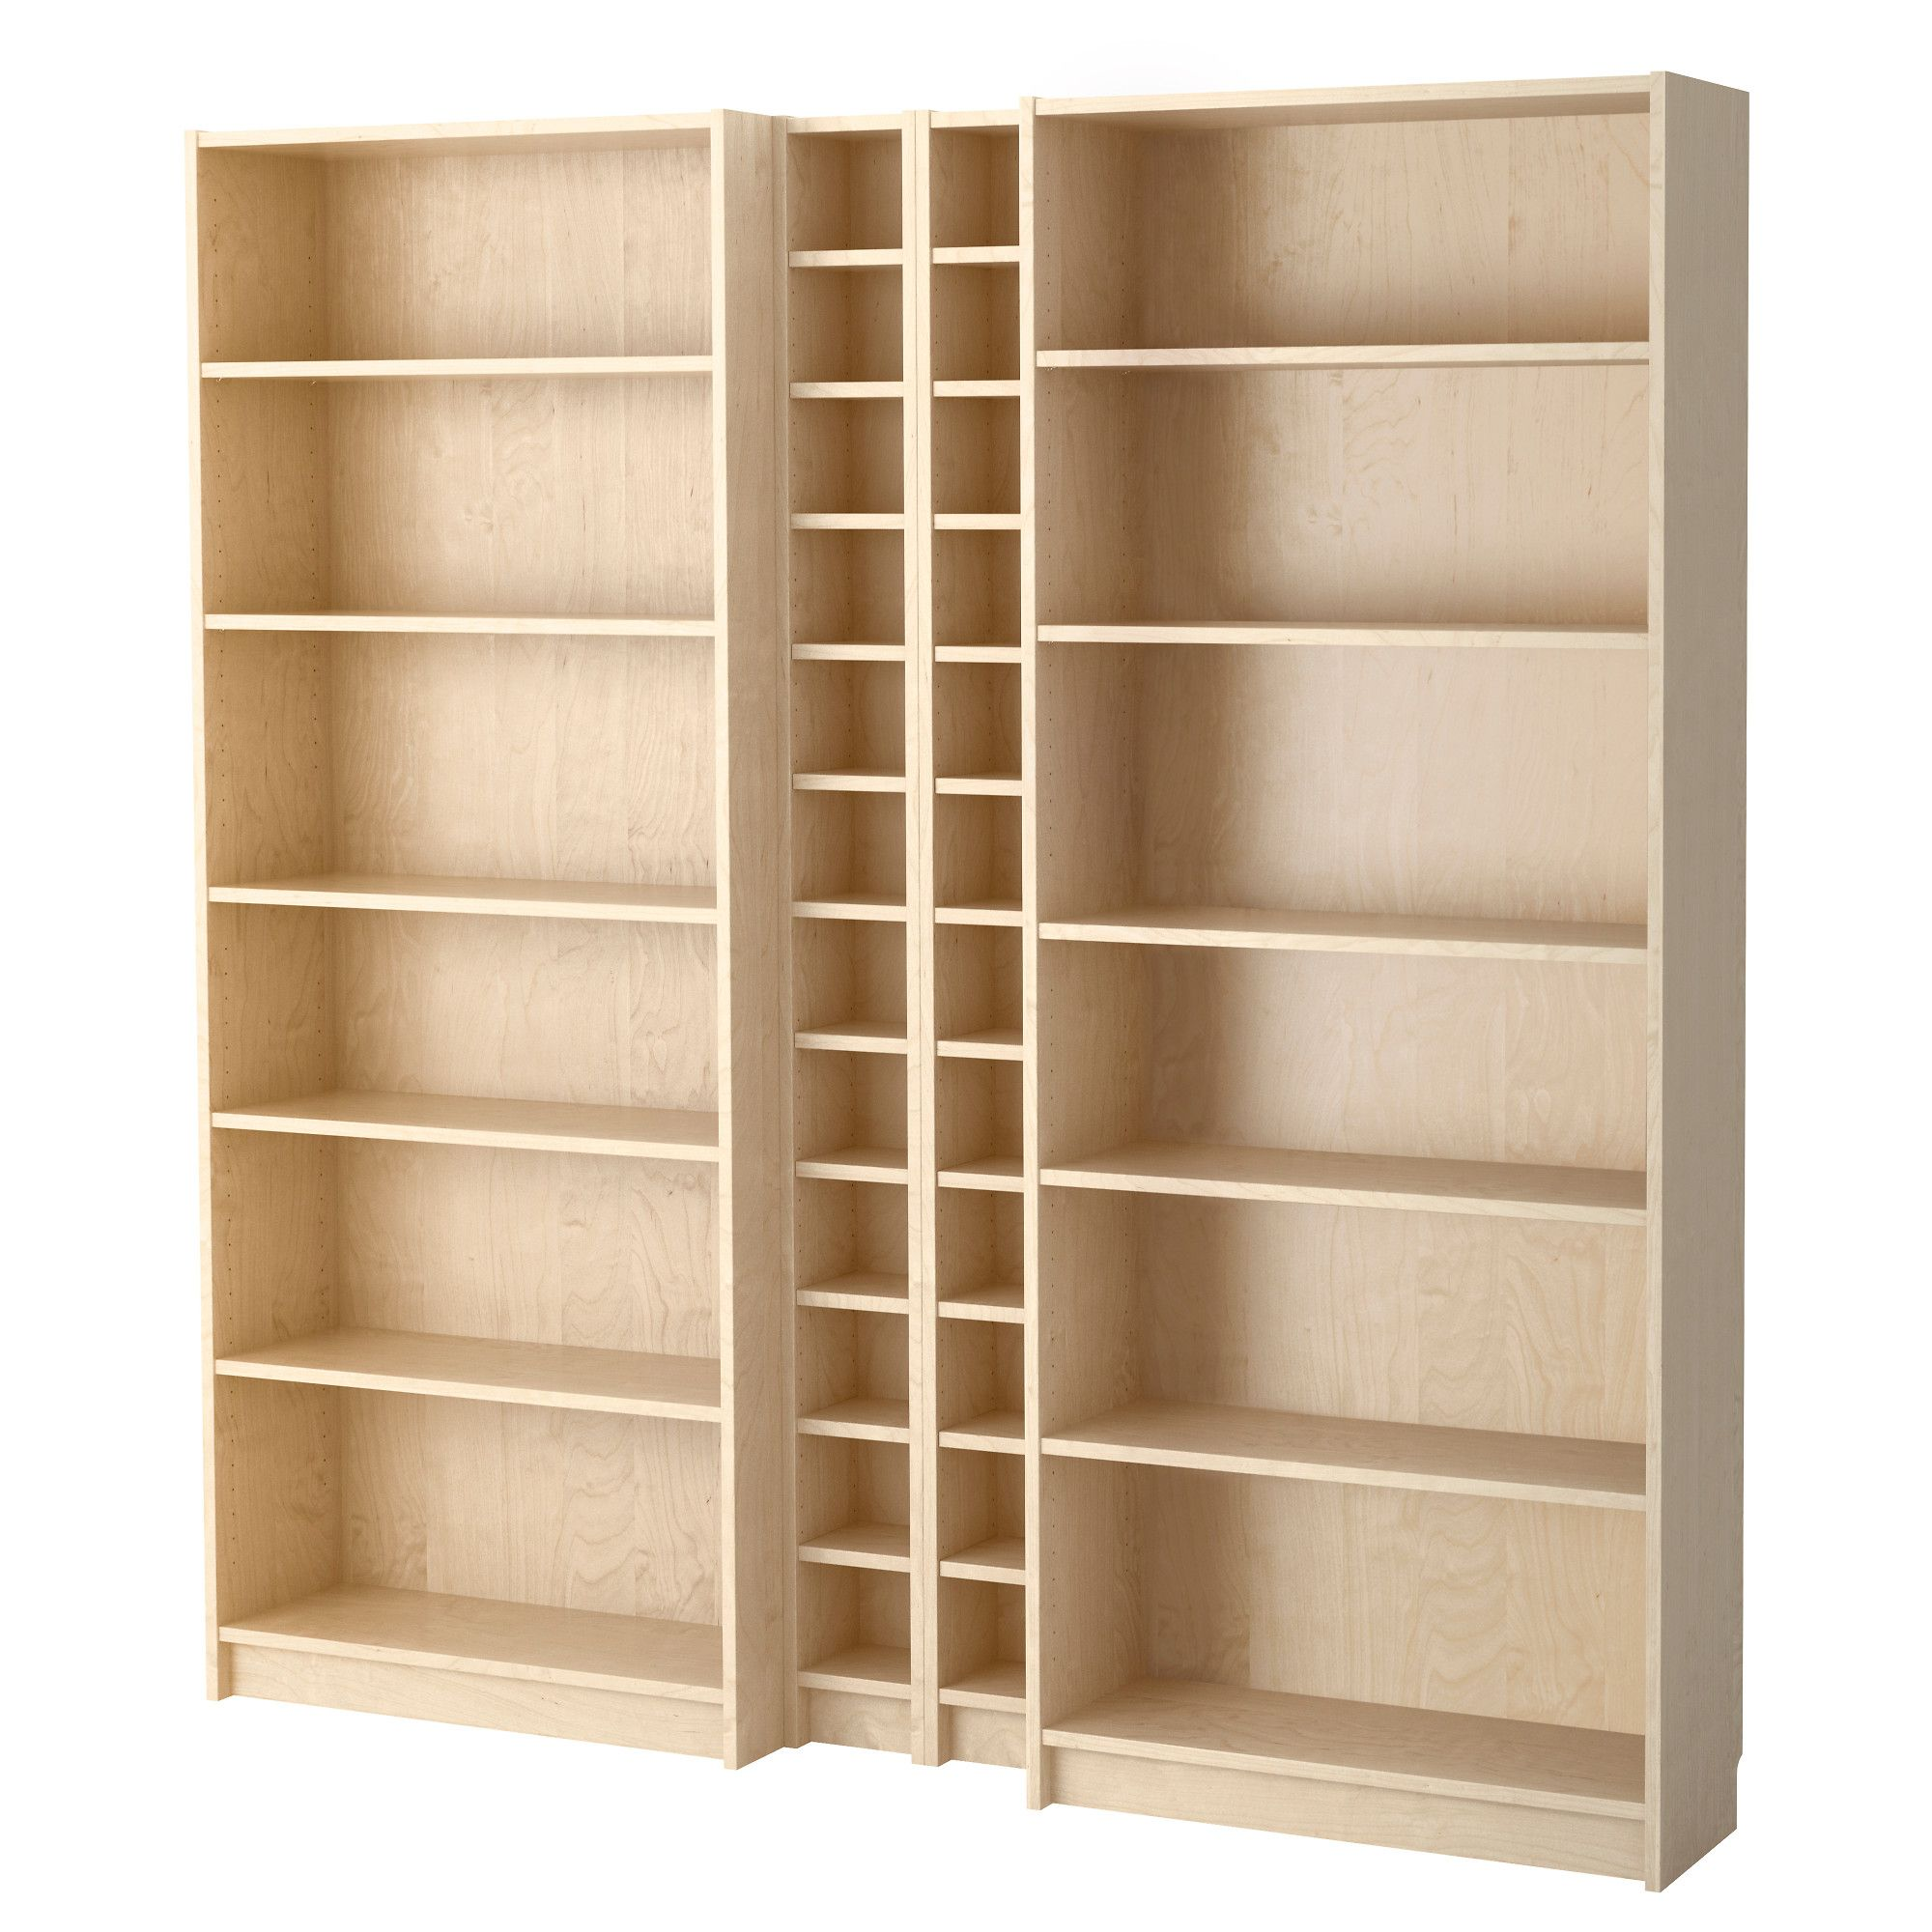 ins bookshelves bookcases from billy in customized bookcase built ikea diy